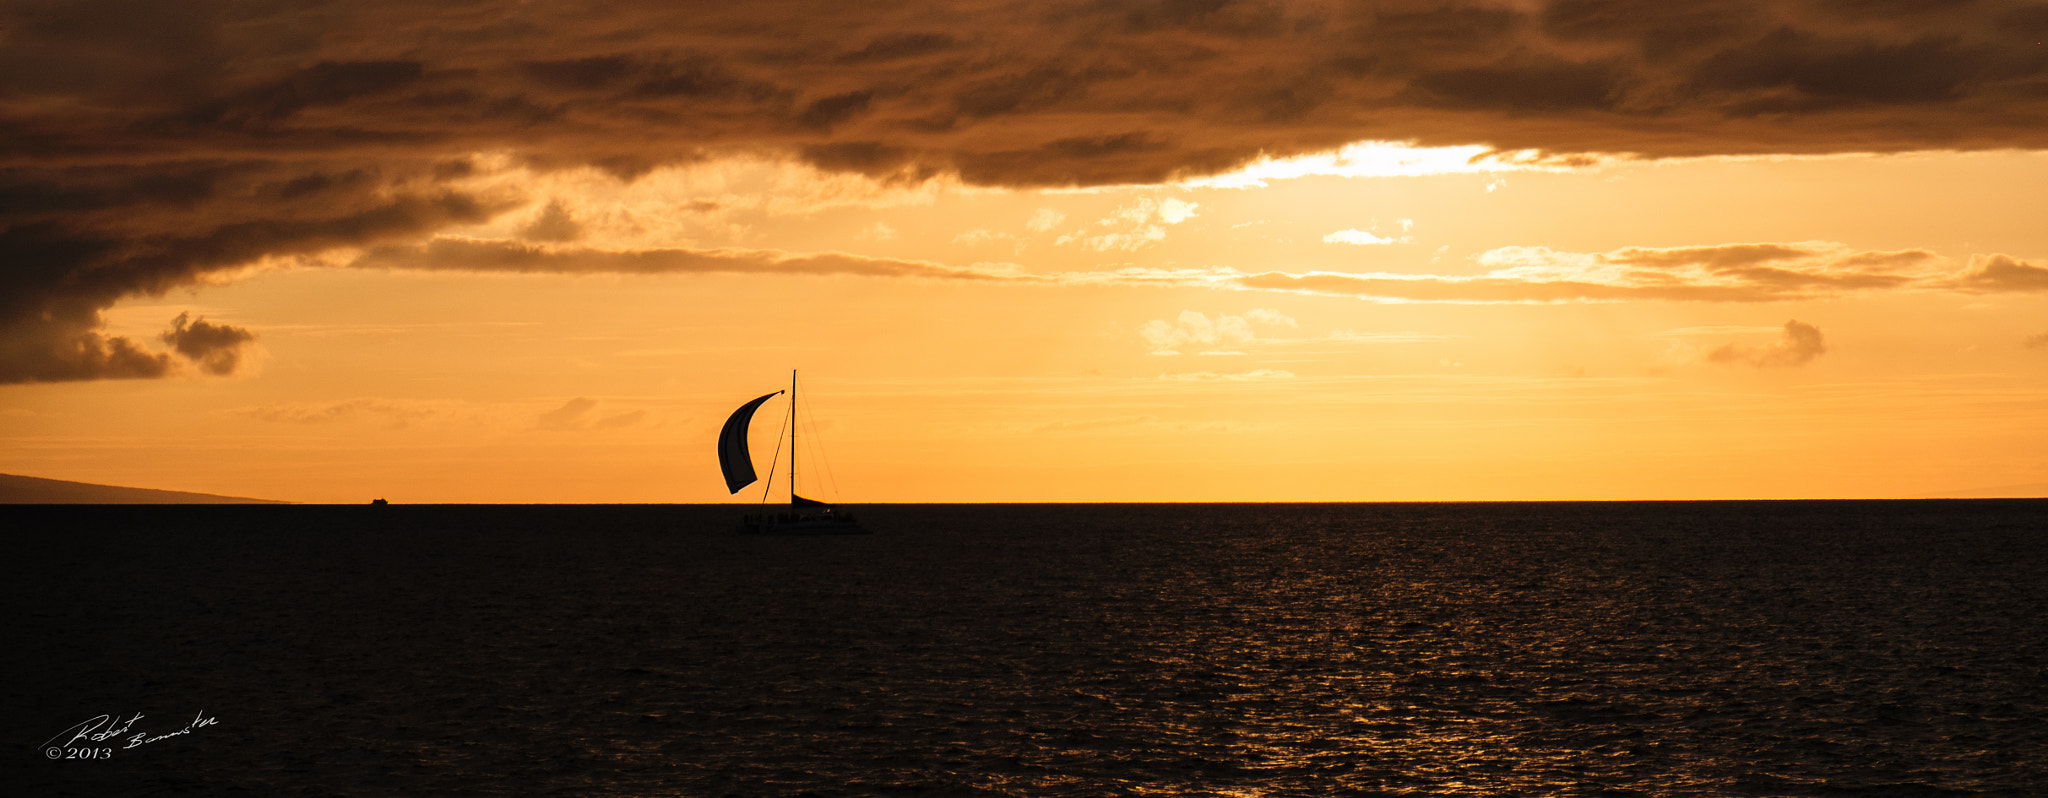 Photograph Sailboat Sunset by Rob Bannister on 500px